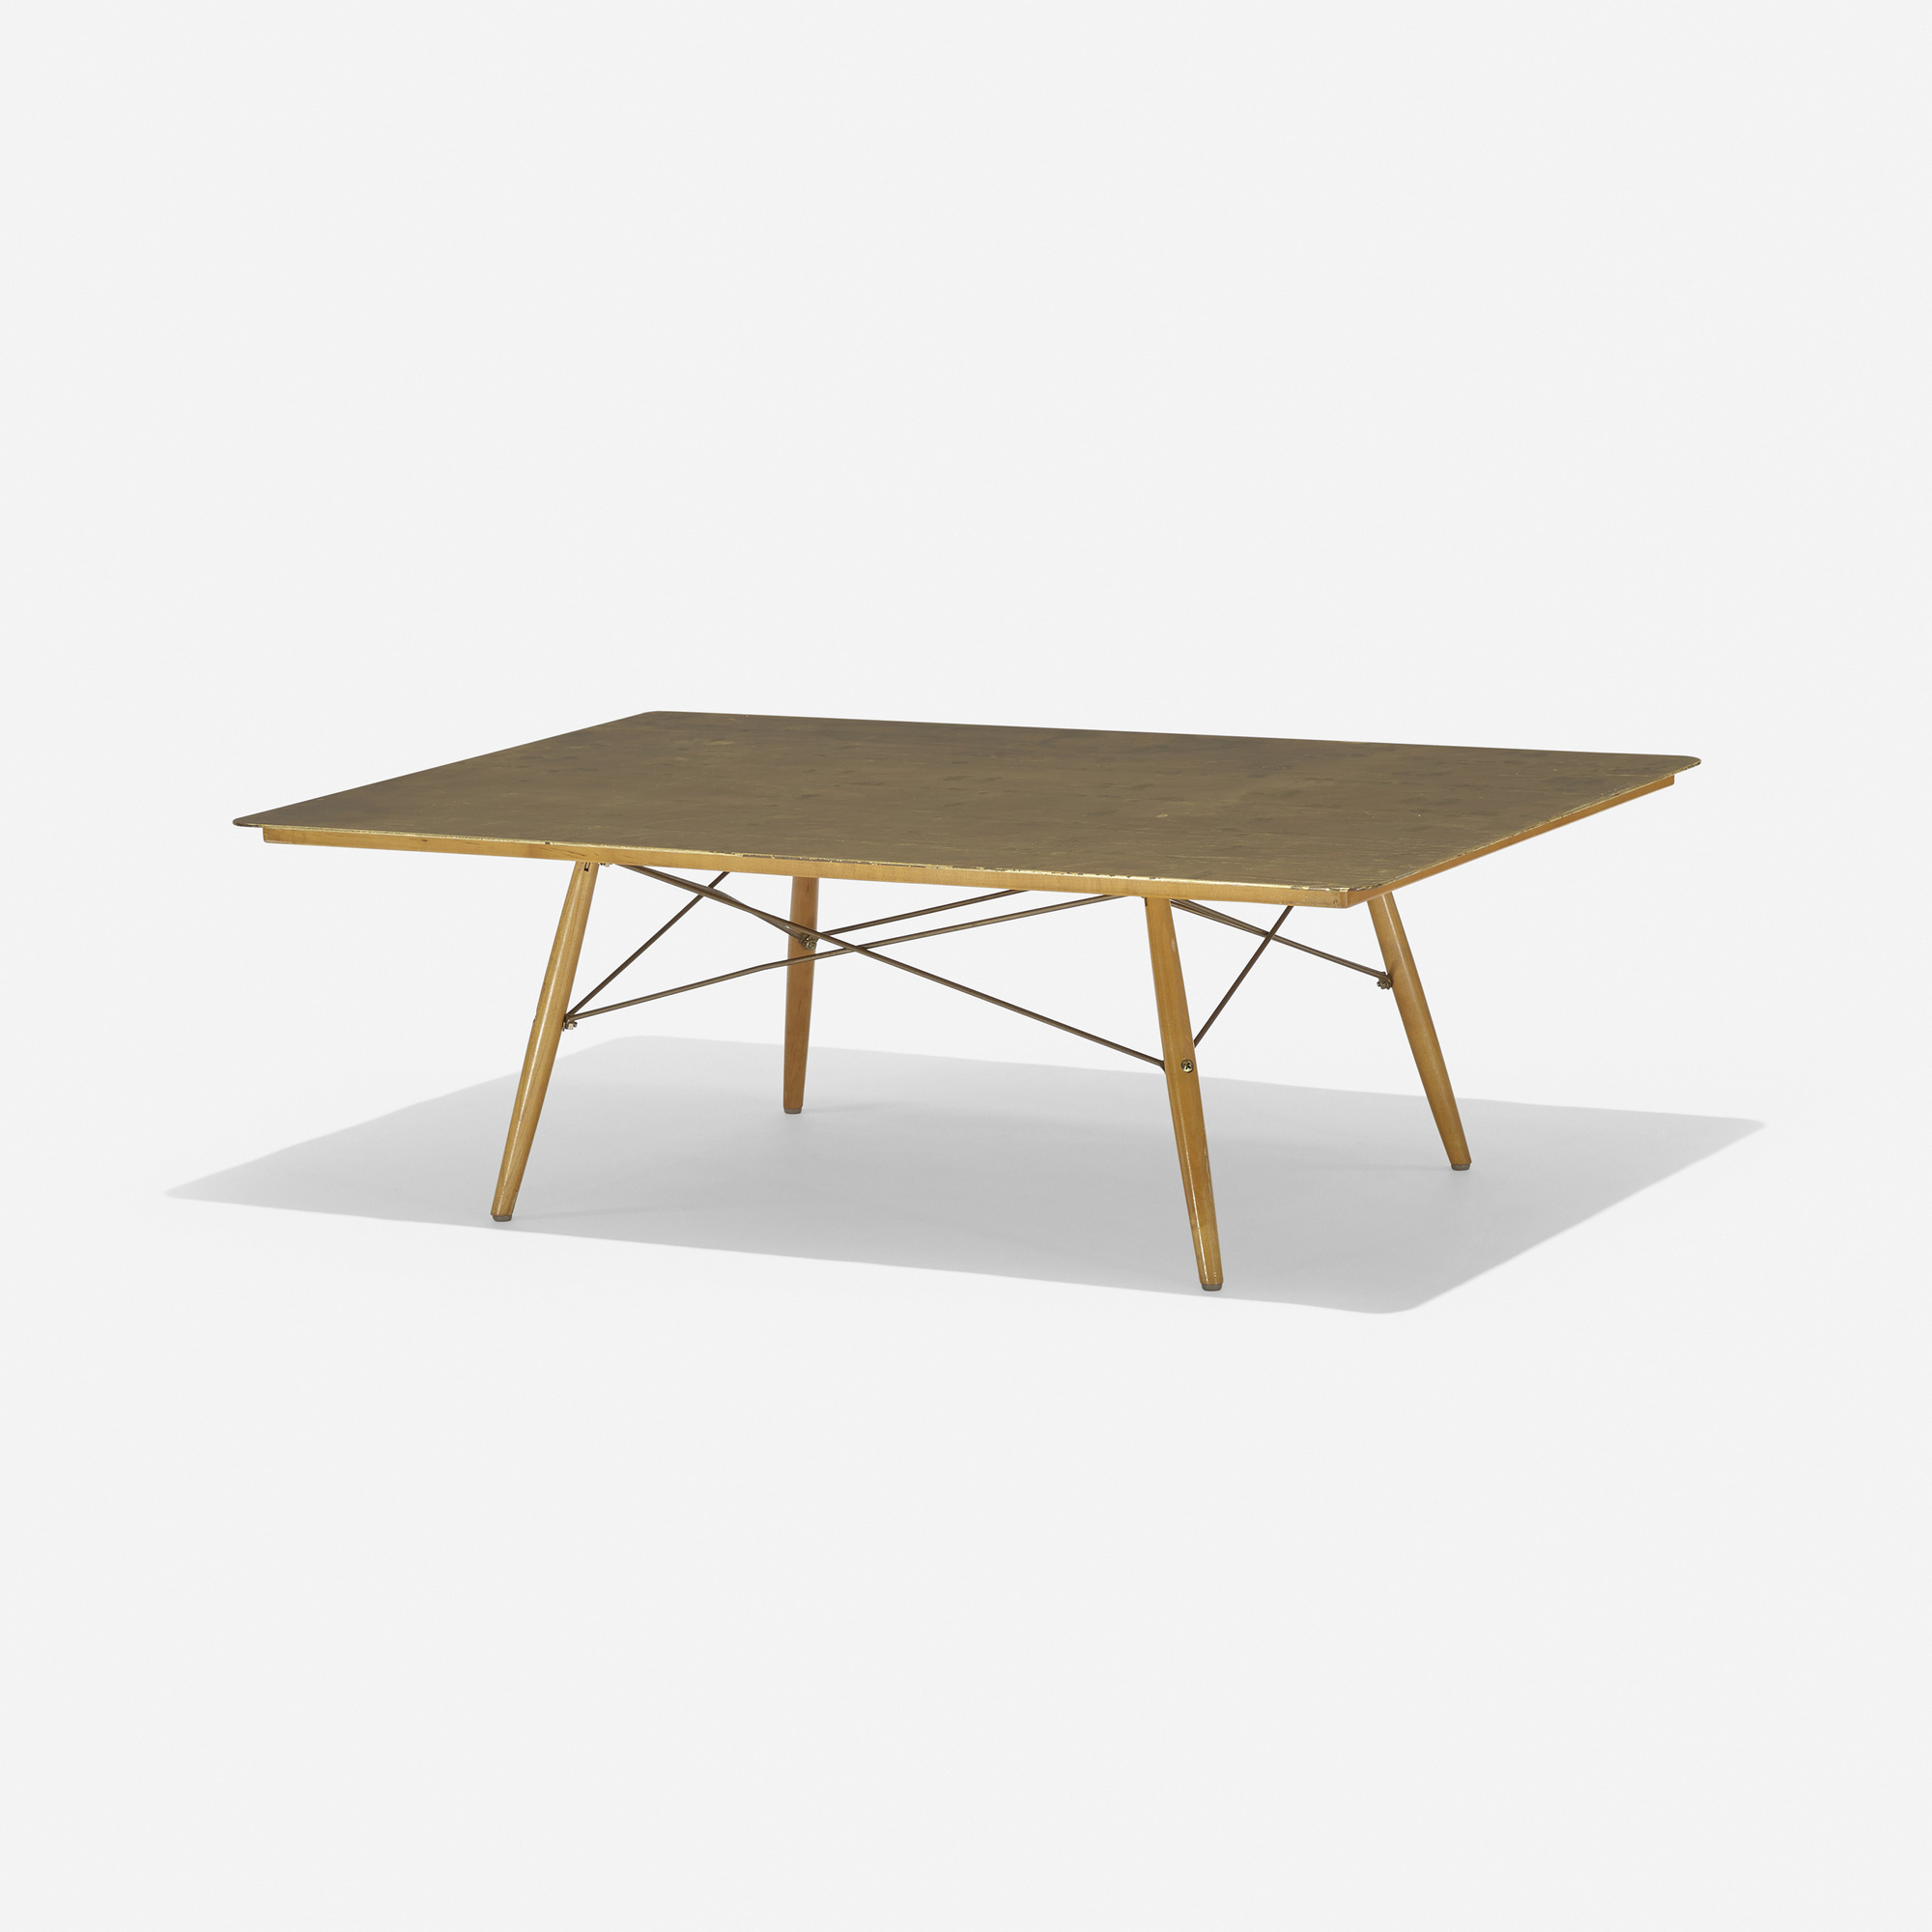 135 Charles and Ray Eames50th anniversary coffee table